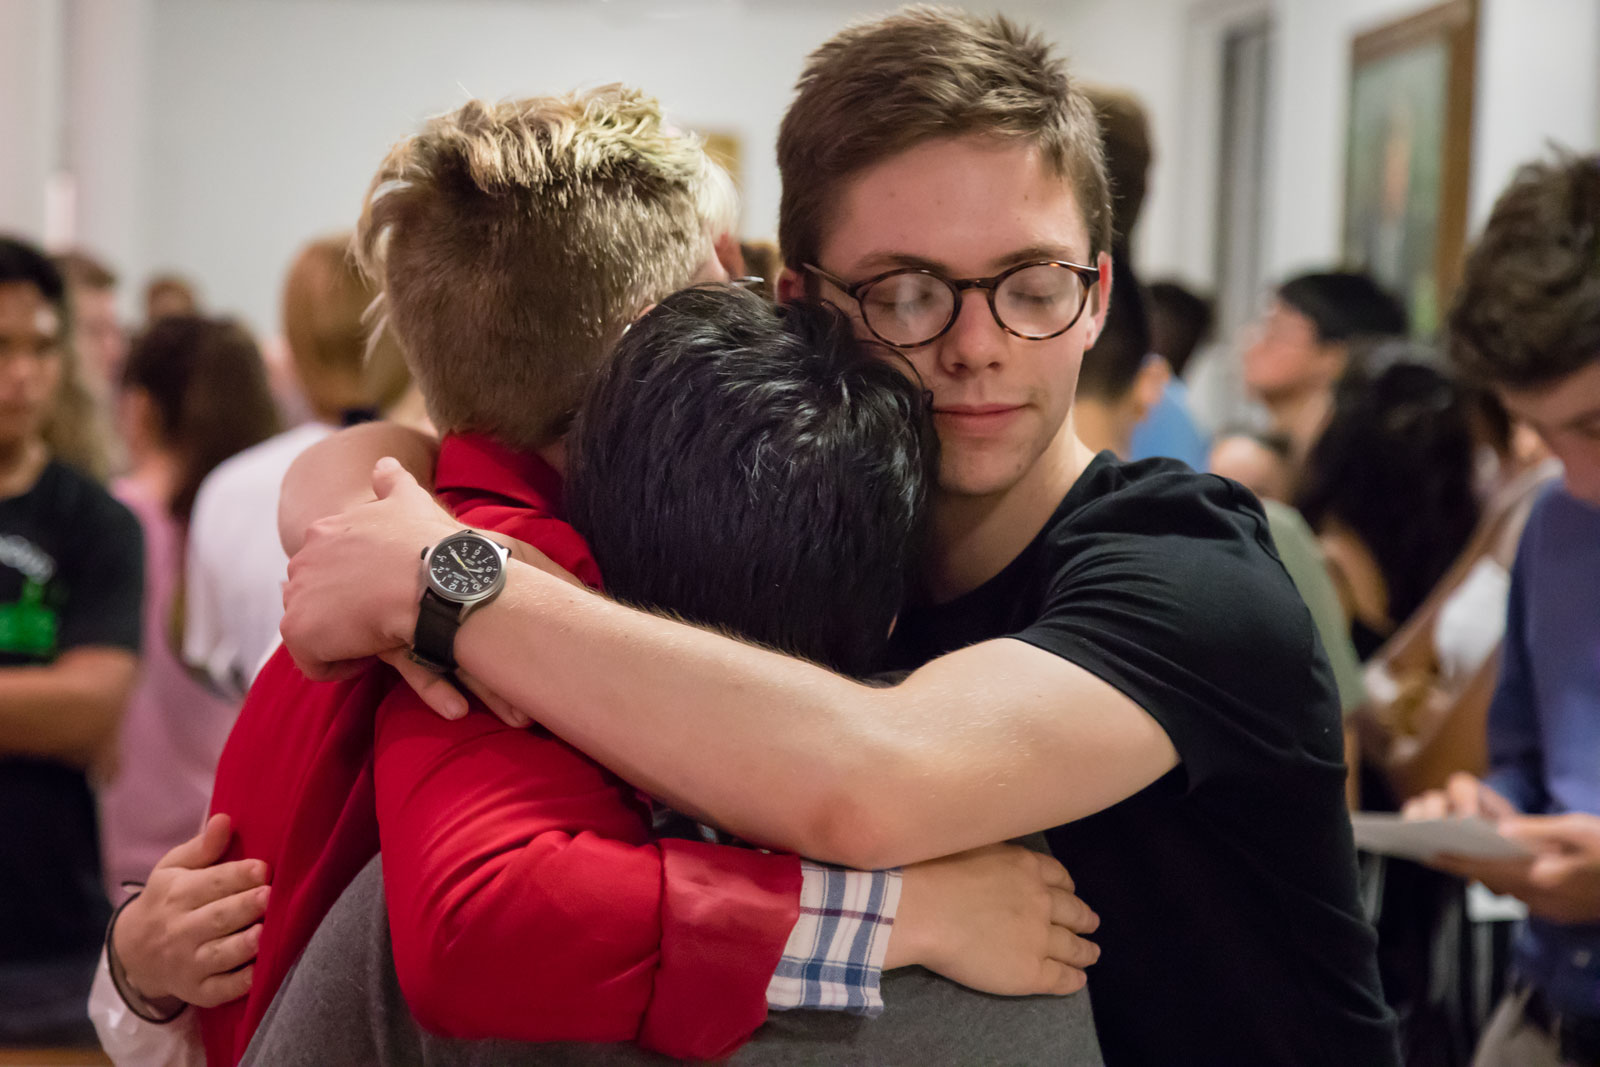 Three students hug